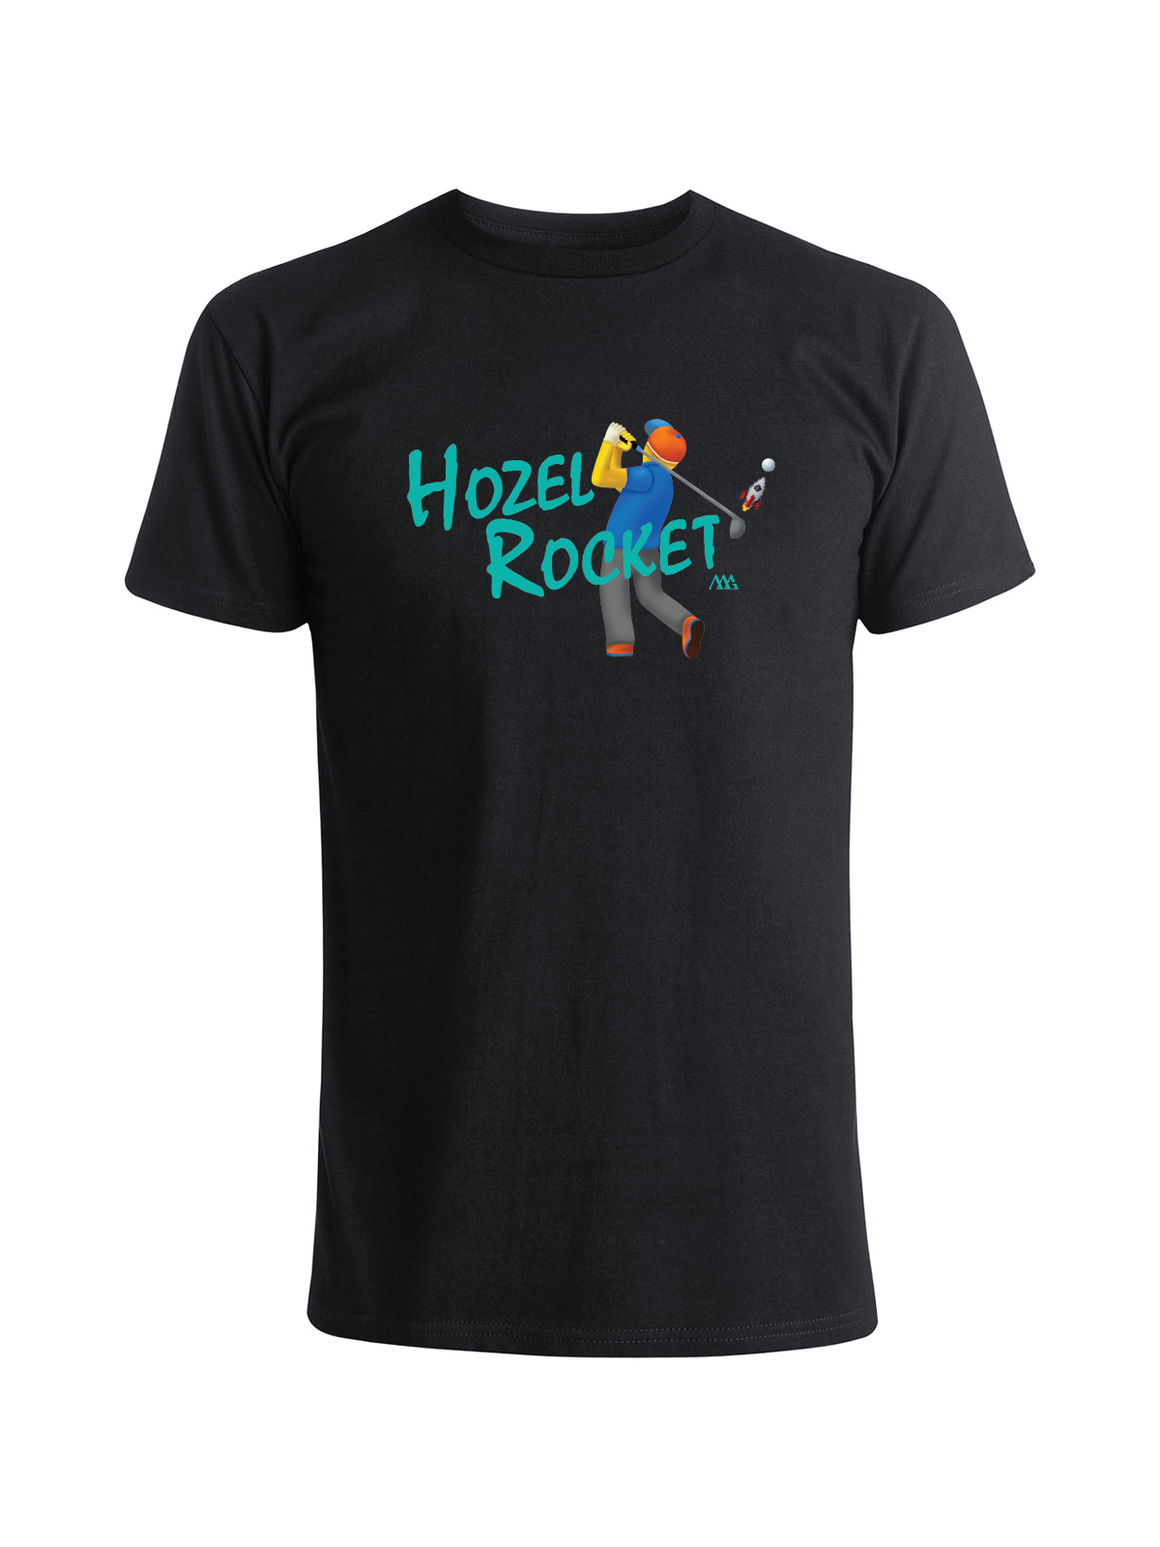 Hozel Rocket Tee Shirt -  Black (Kauai)